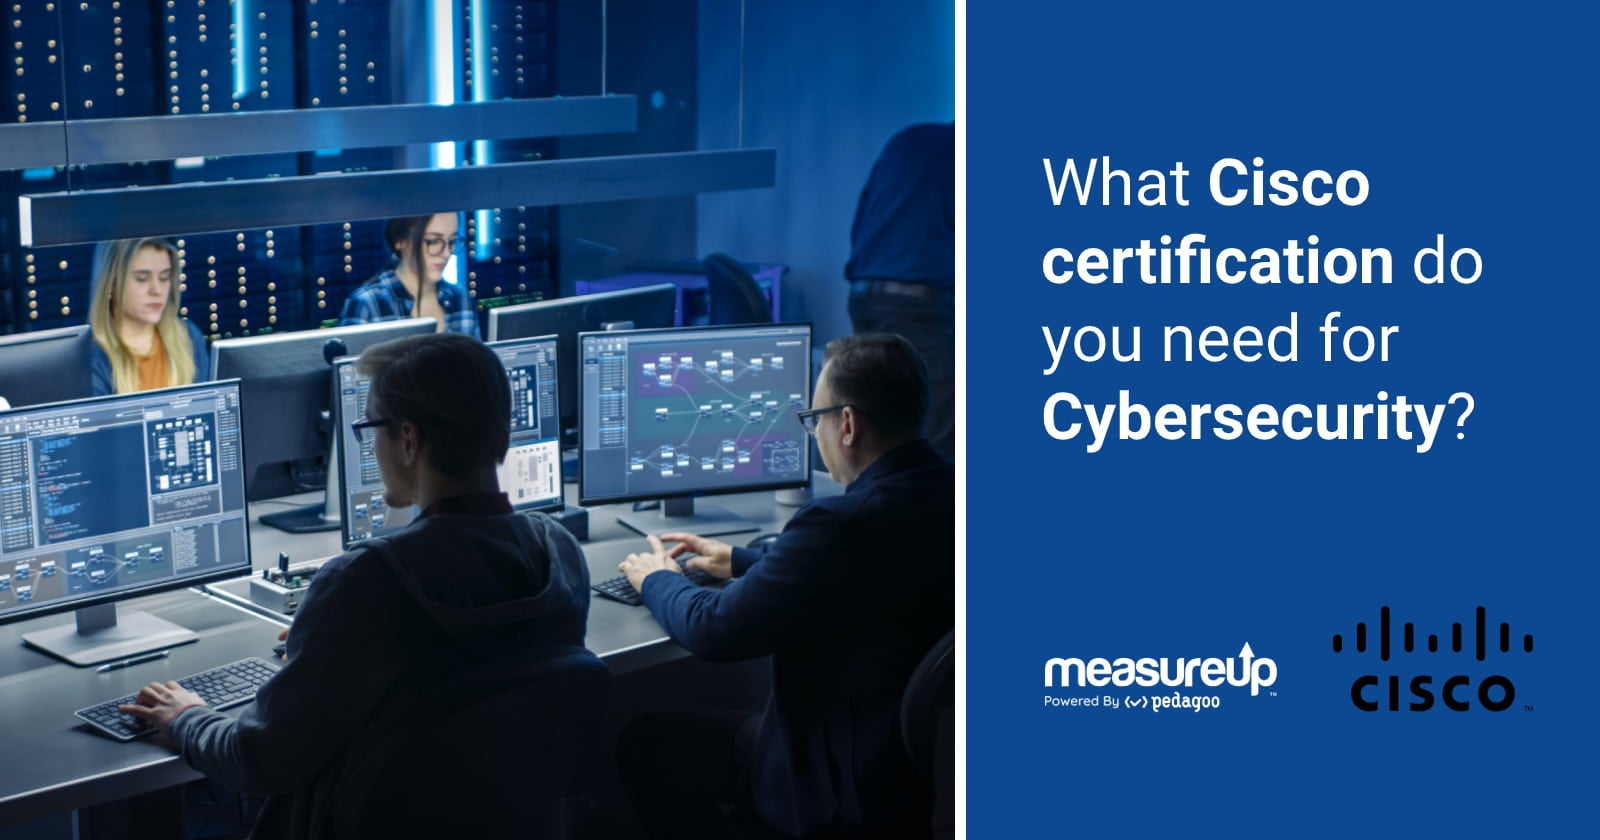 What Cisco certification do you need for Cybersecurity?